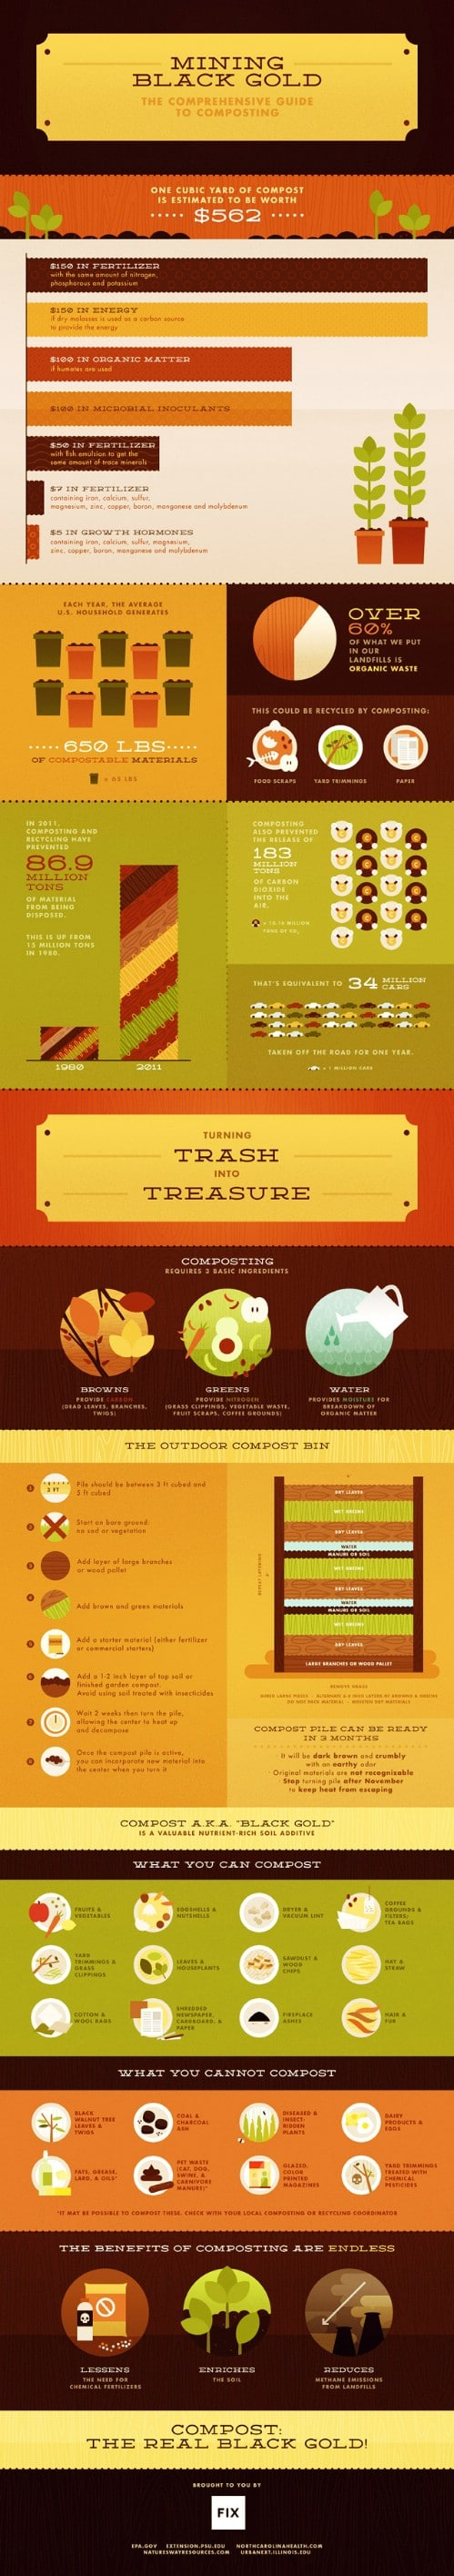 Learn all there is to know about compost with a handy infographic.